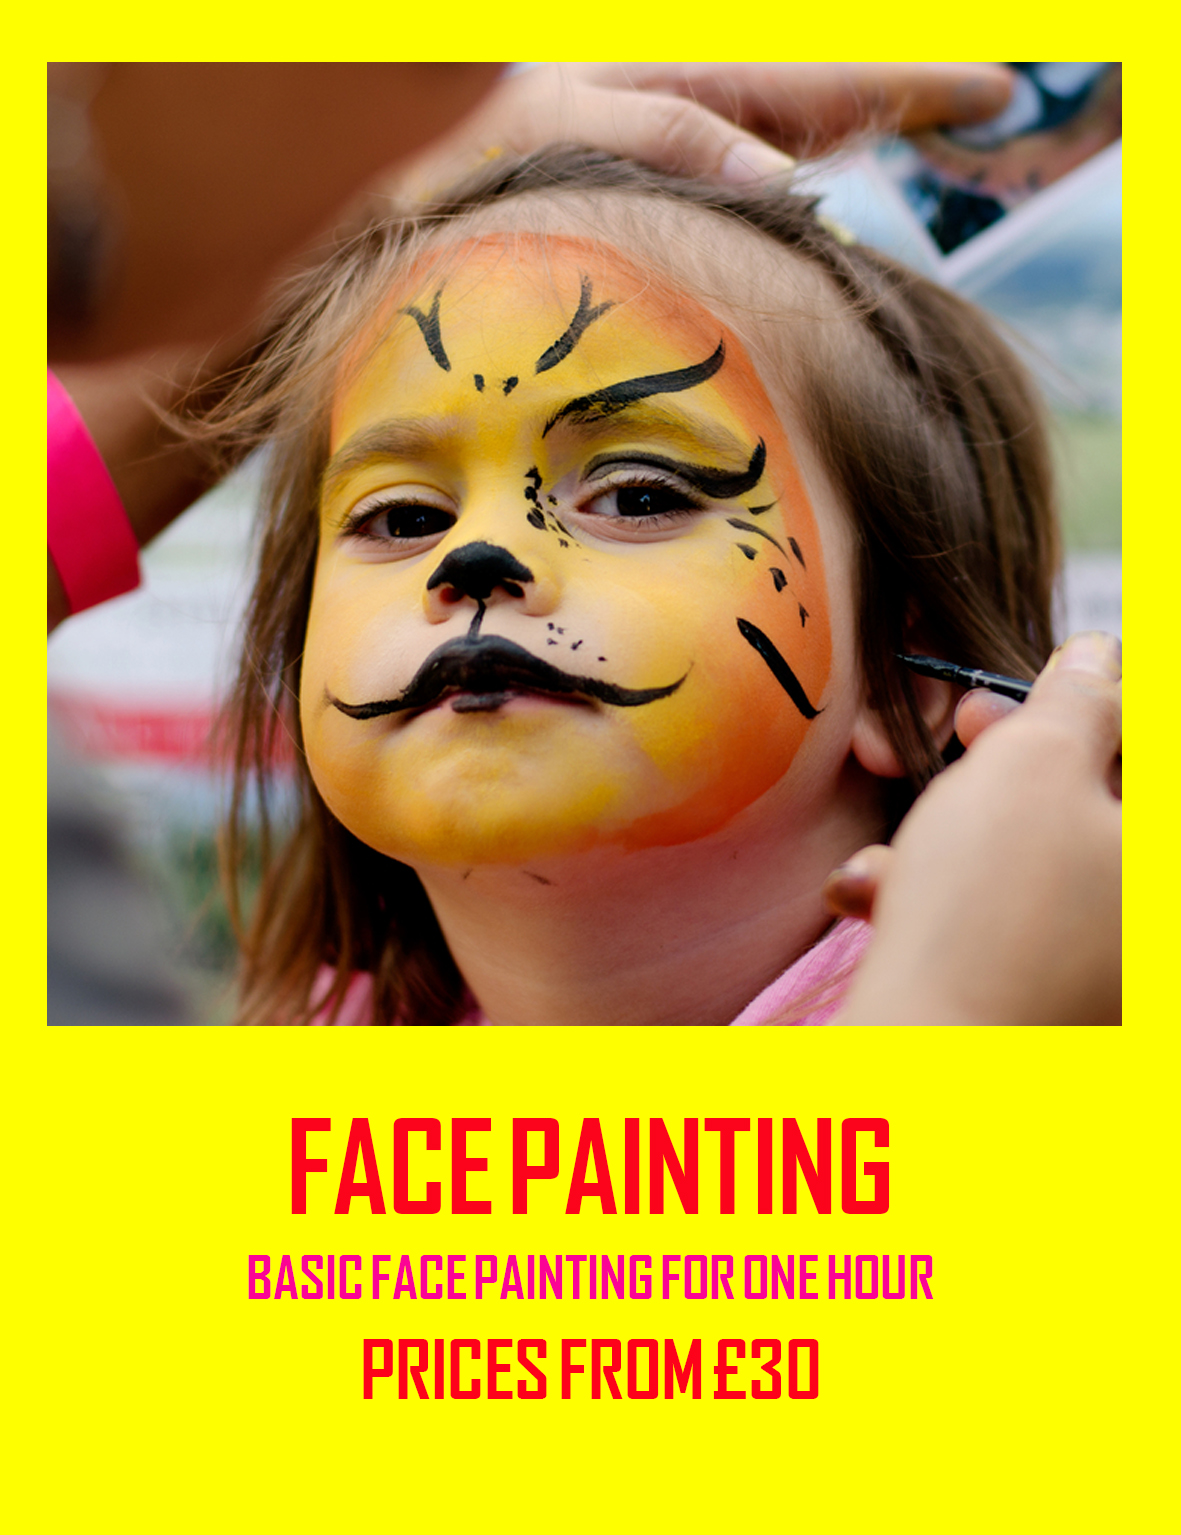 FACE PAINTING CORNWALL